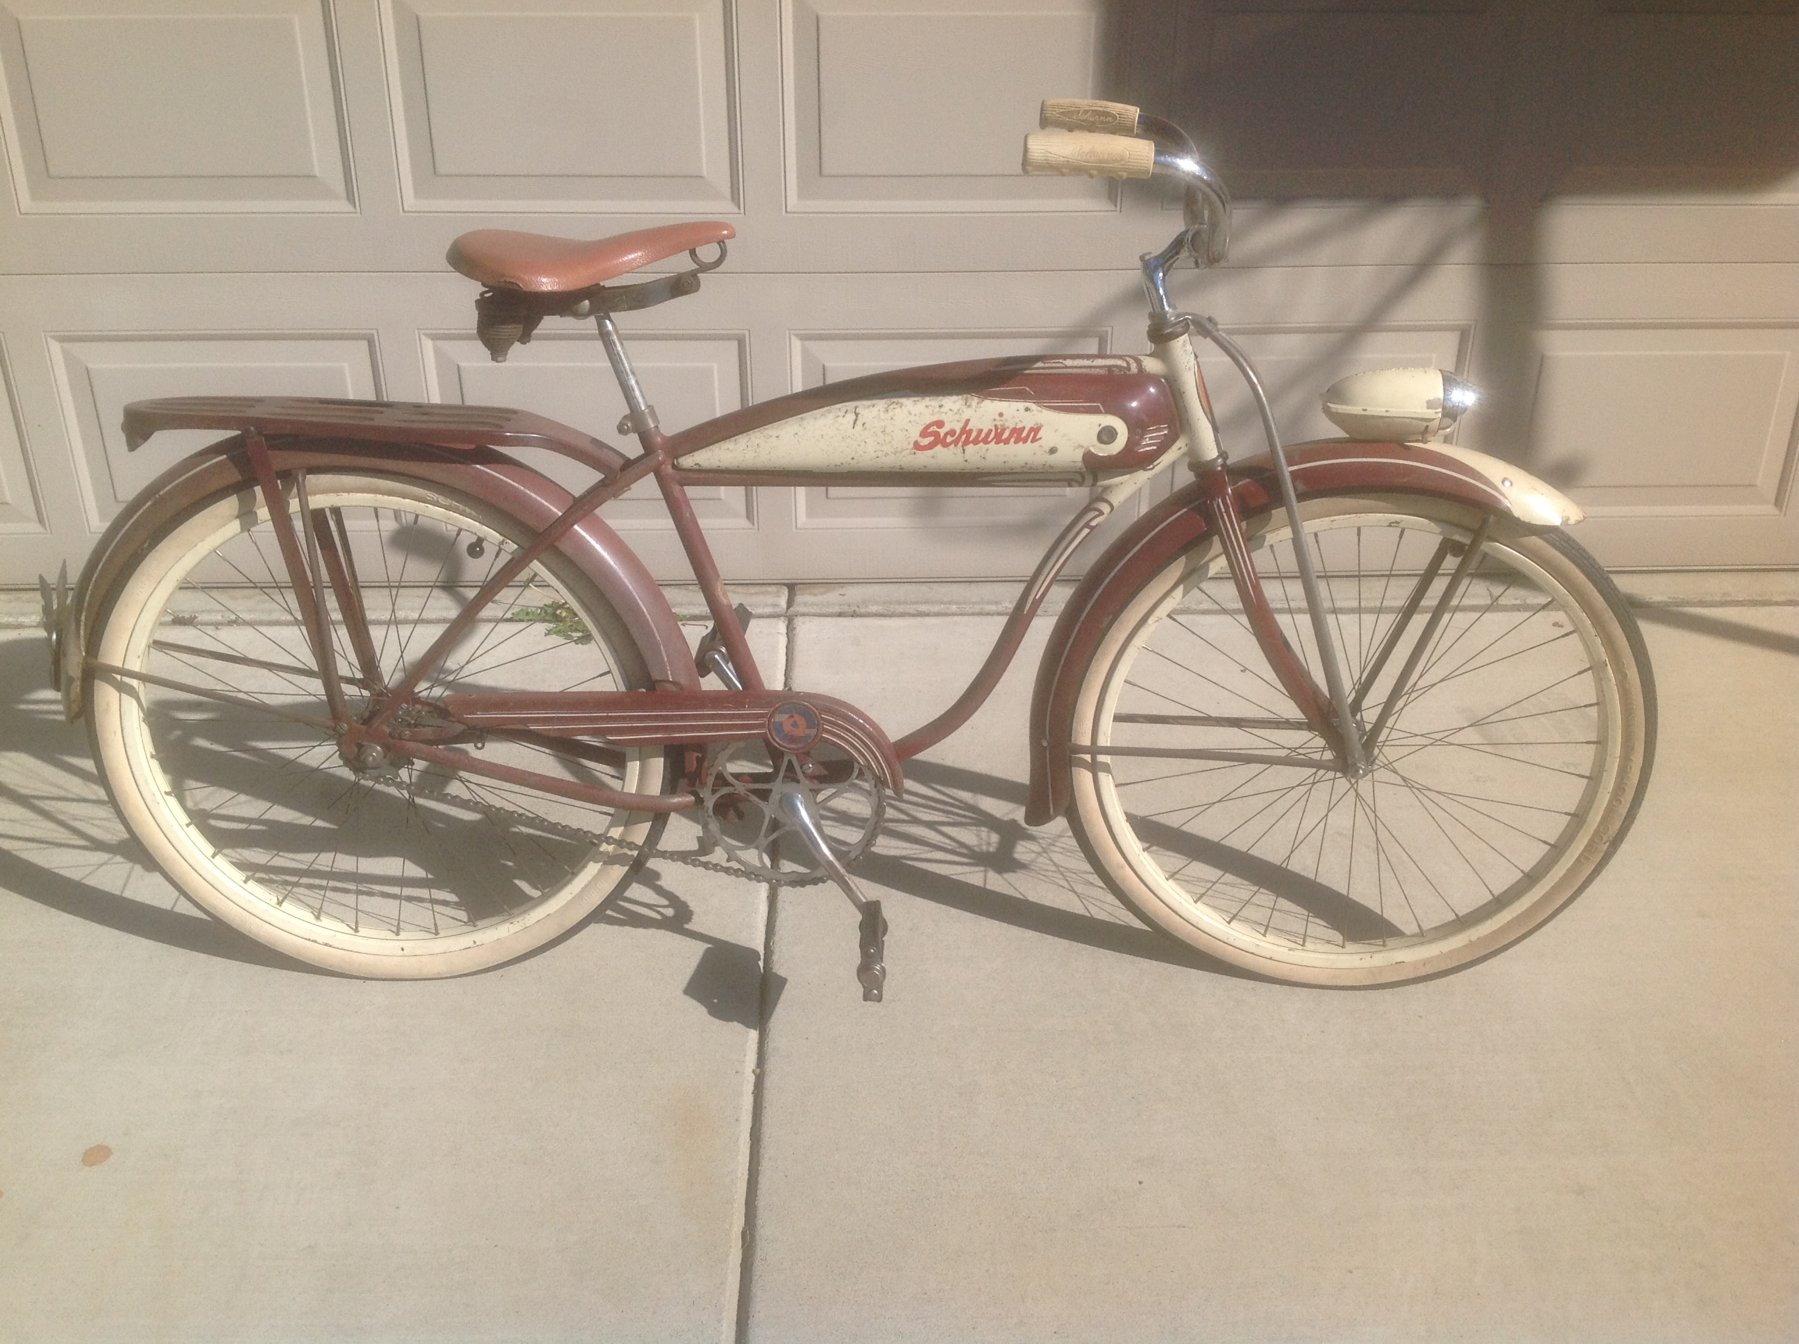 735bb754d83 Can anyone tell what if any parts are correct for this 1950 Schwinn. It's  has a Schwinn BF Goodrich headbadge, BFG chain guard and rear BFG reflector?